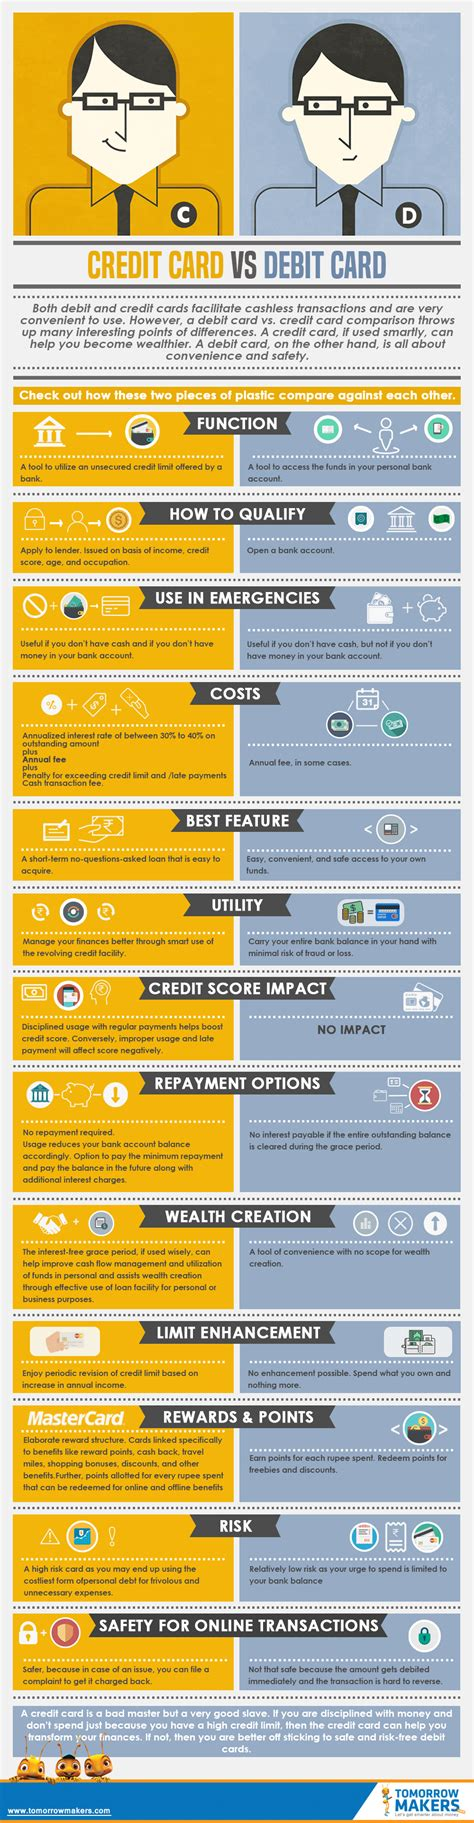 Give Prepaid Credit Card Gift - debit card vs credit card infographic